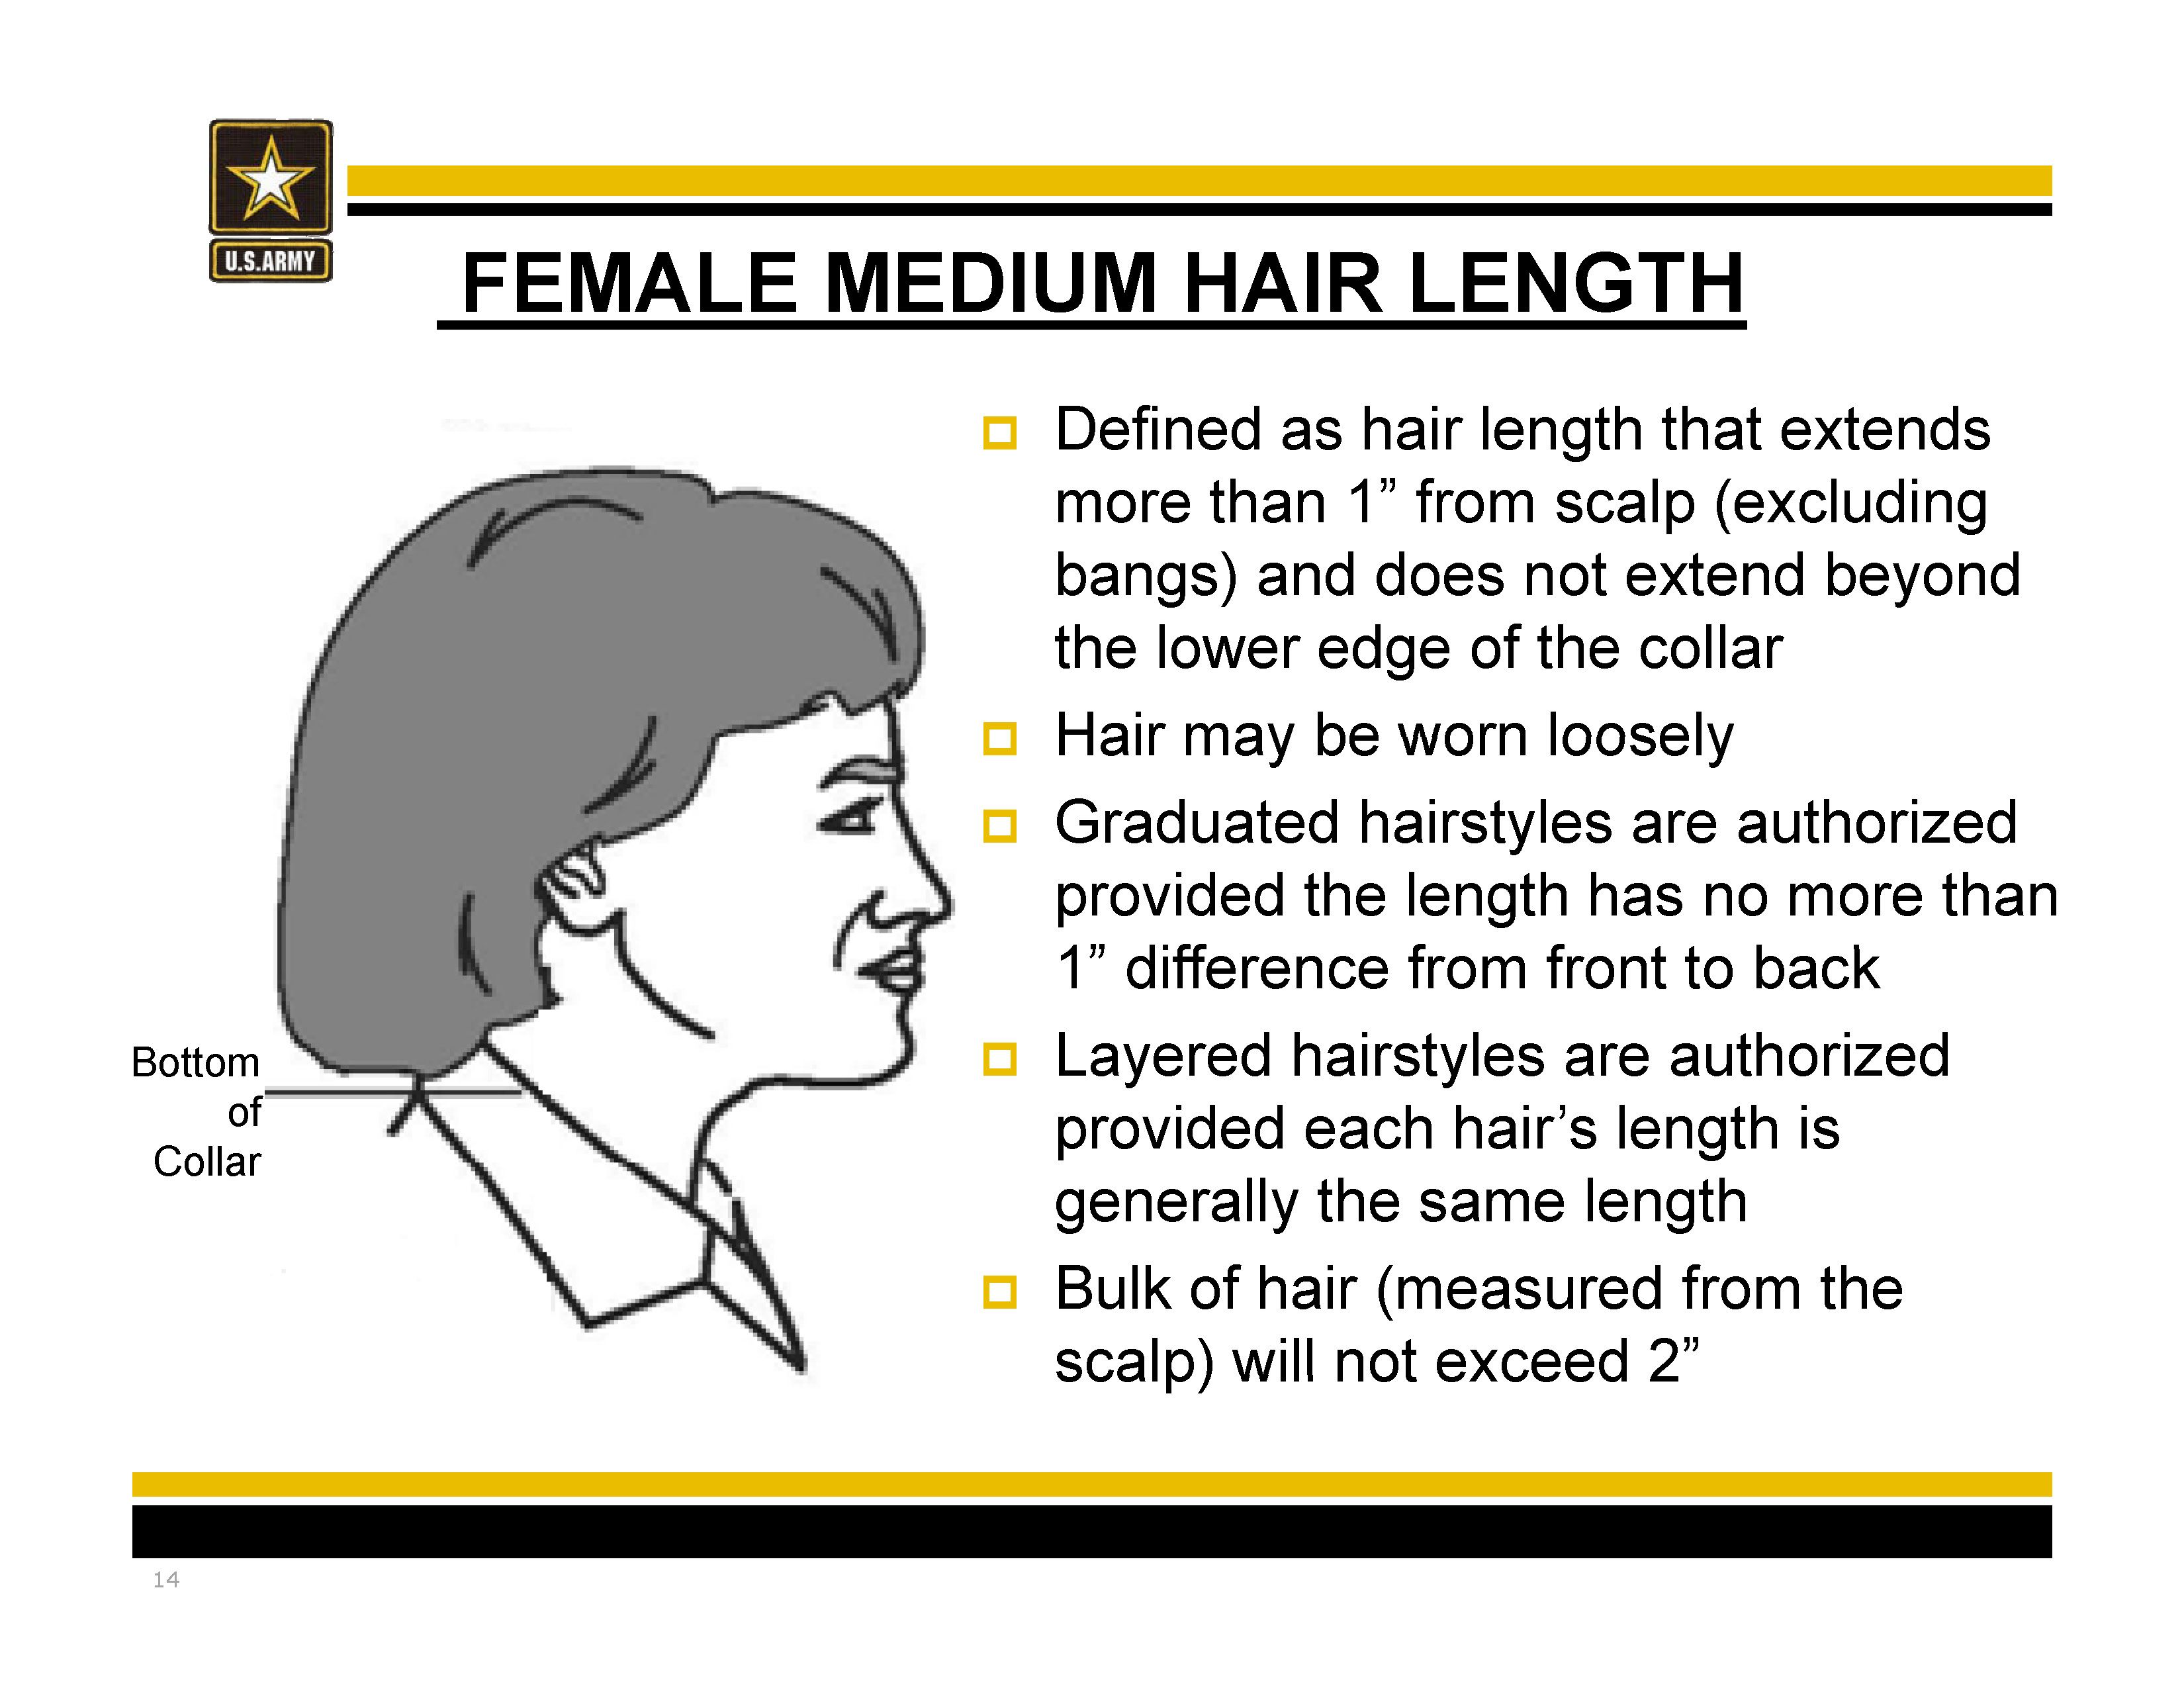 new army hair regulations - ar 670-1 as of 31 march 2014